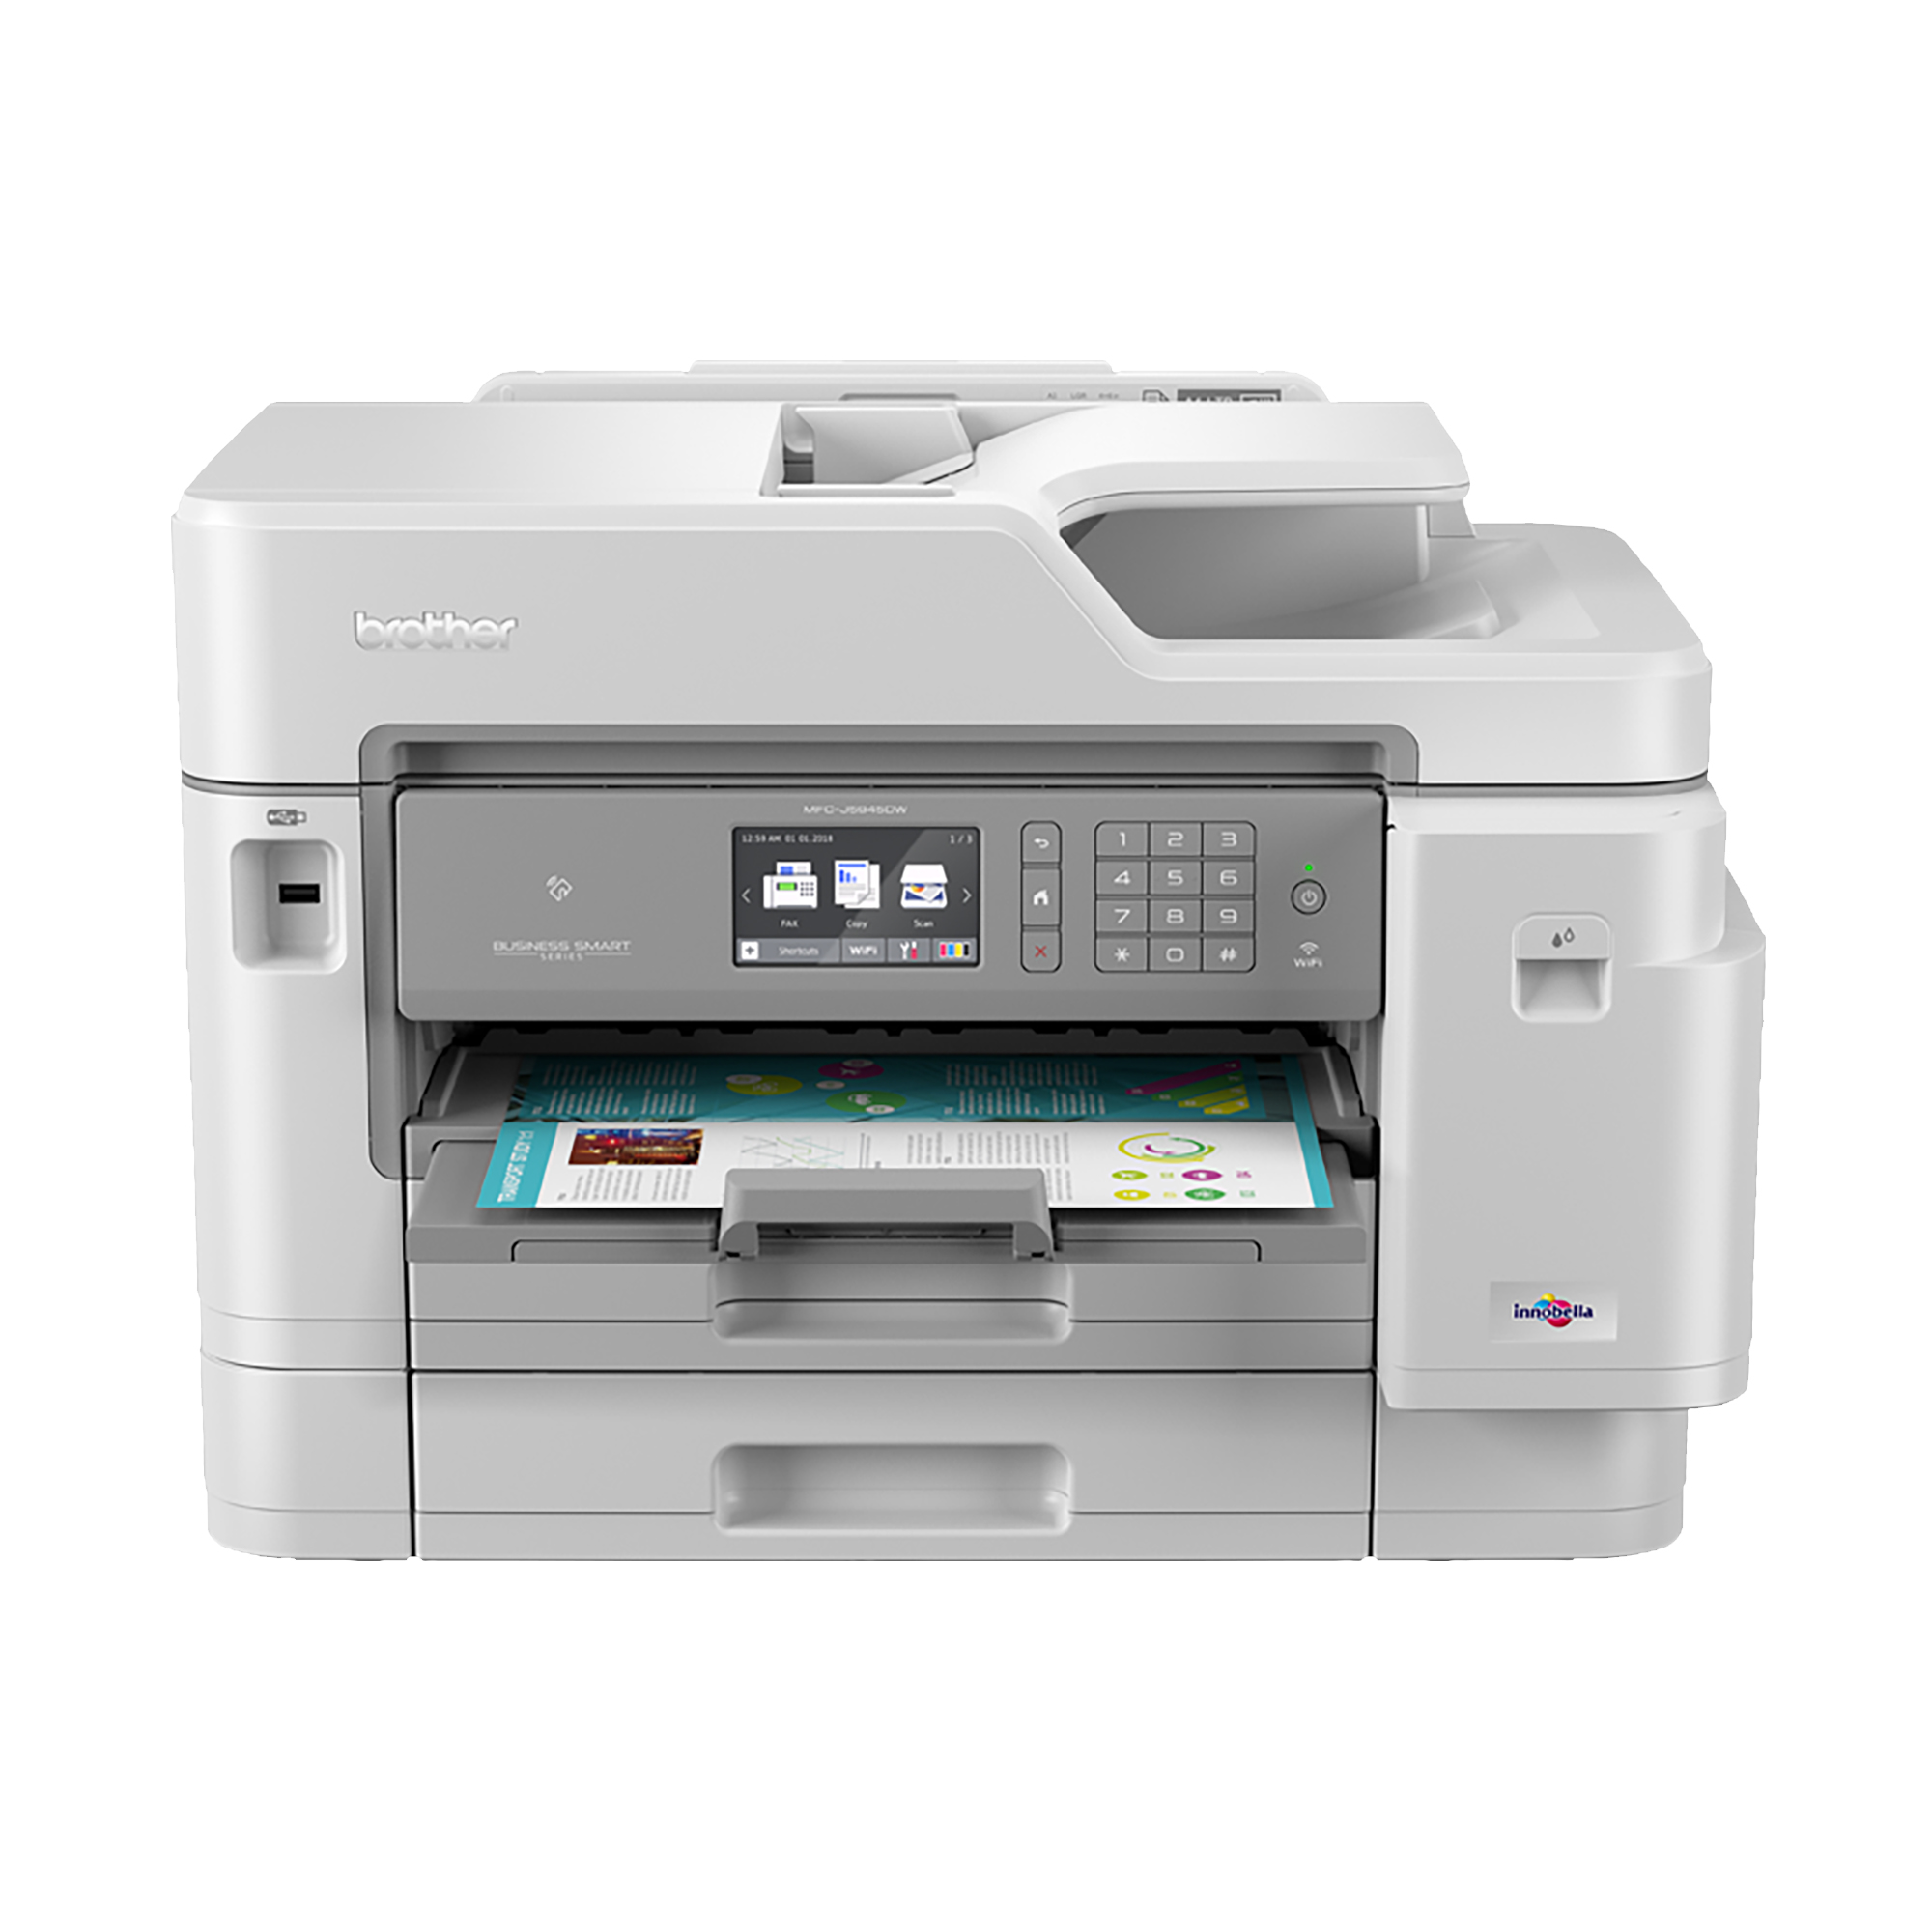 Multi function printers Brother MFC-J5945DW Inkjet Printer Multifunctional 4 in 1 Ref MFC-J5945DW